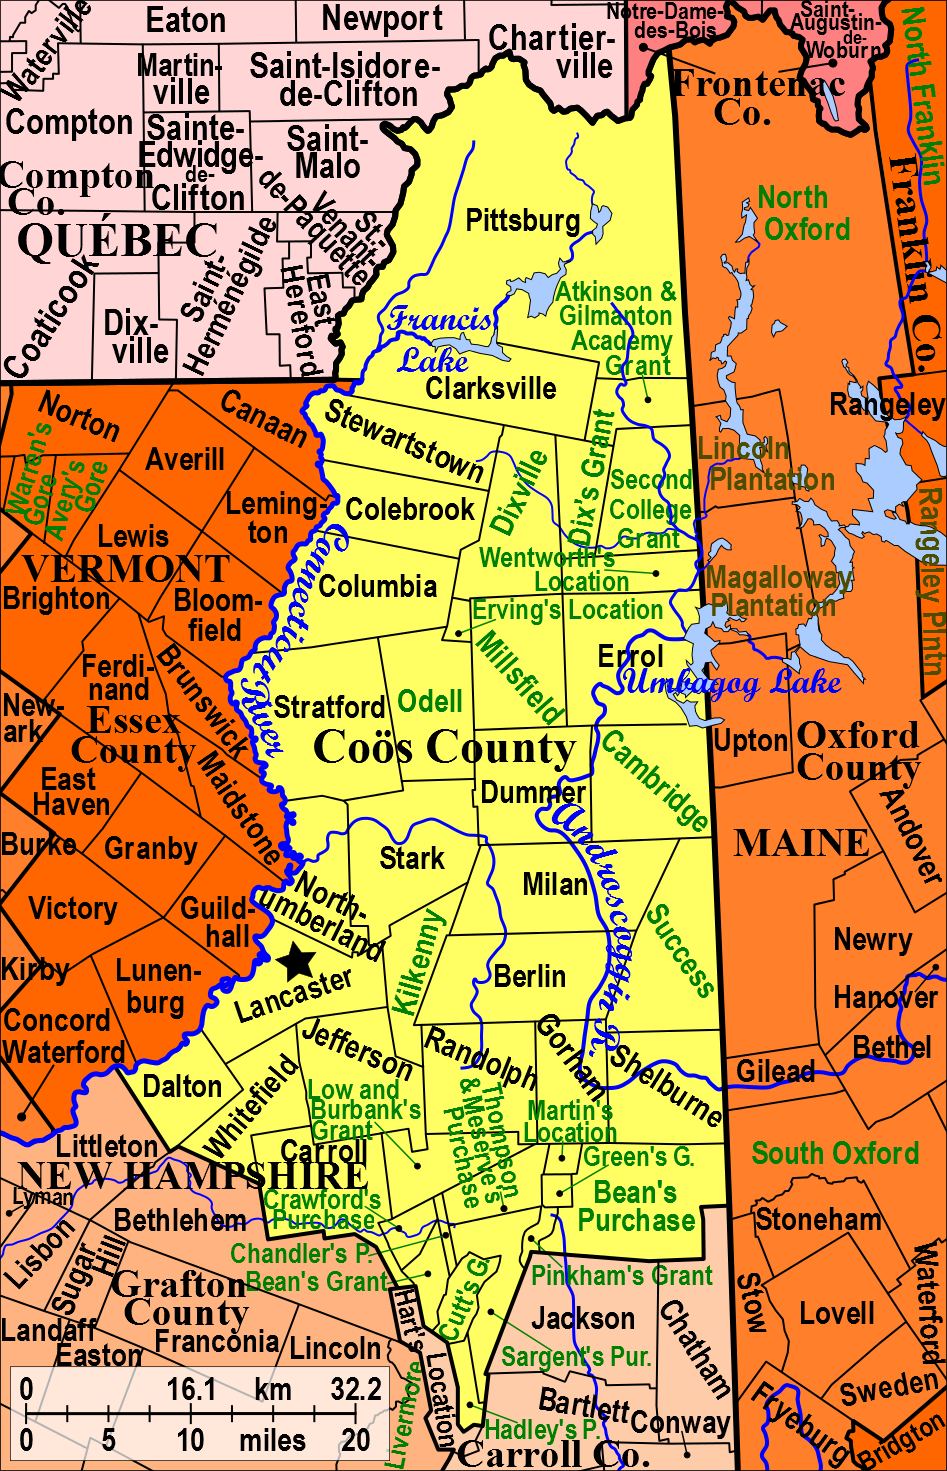 Coos County Nh Assessor Property Search